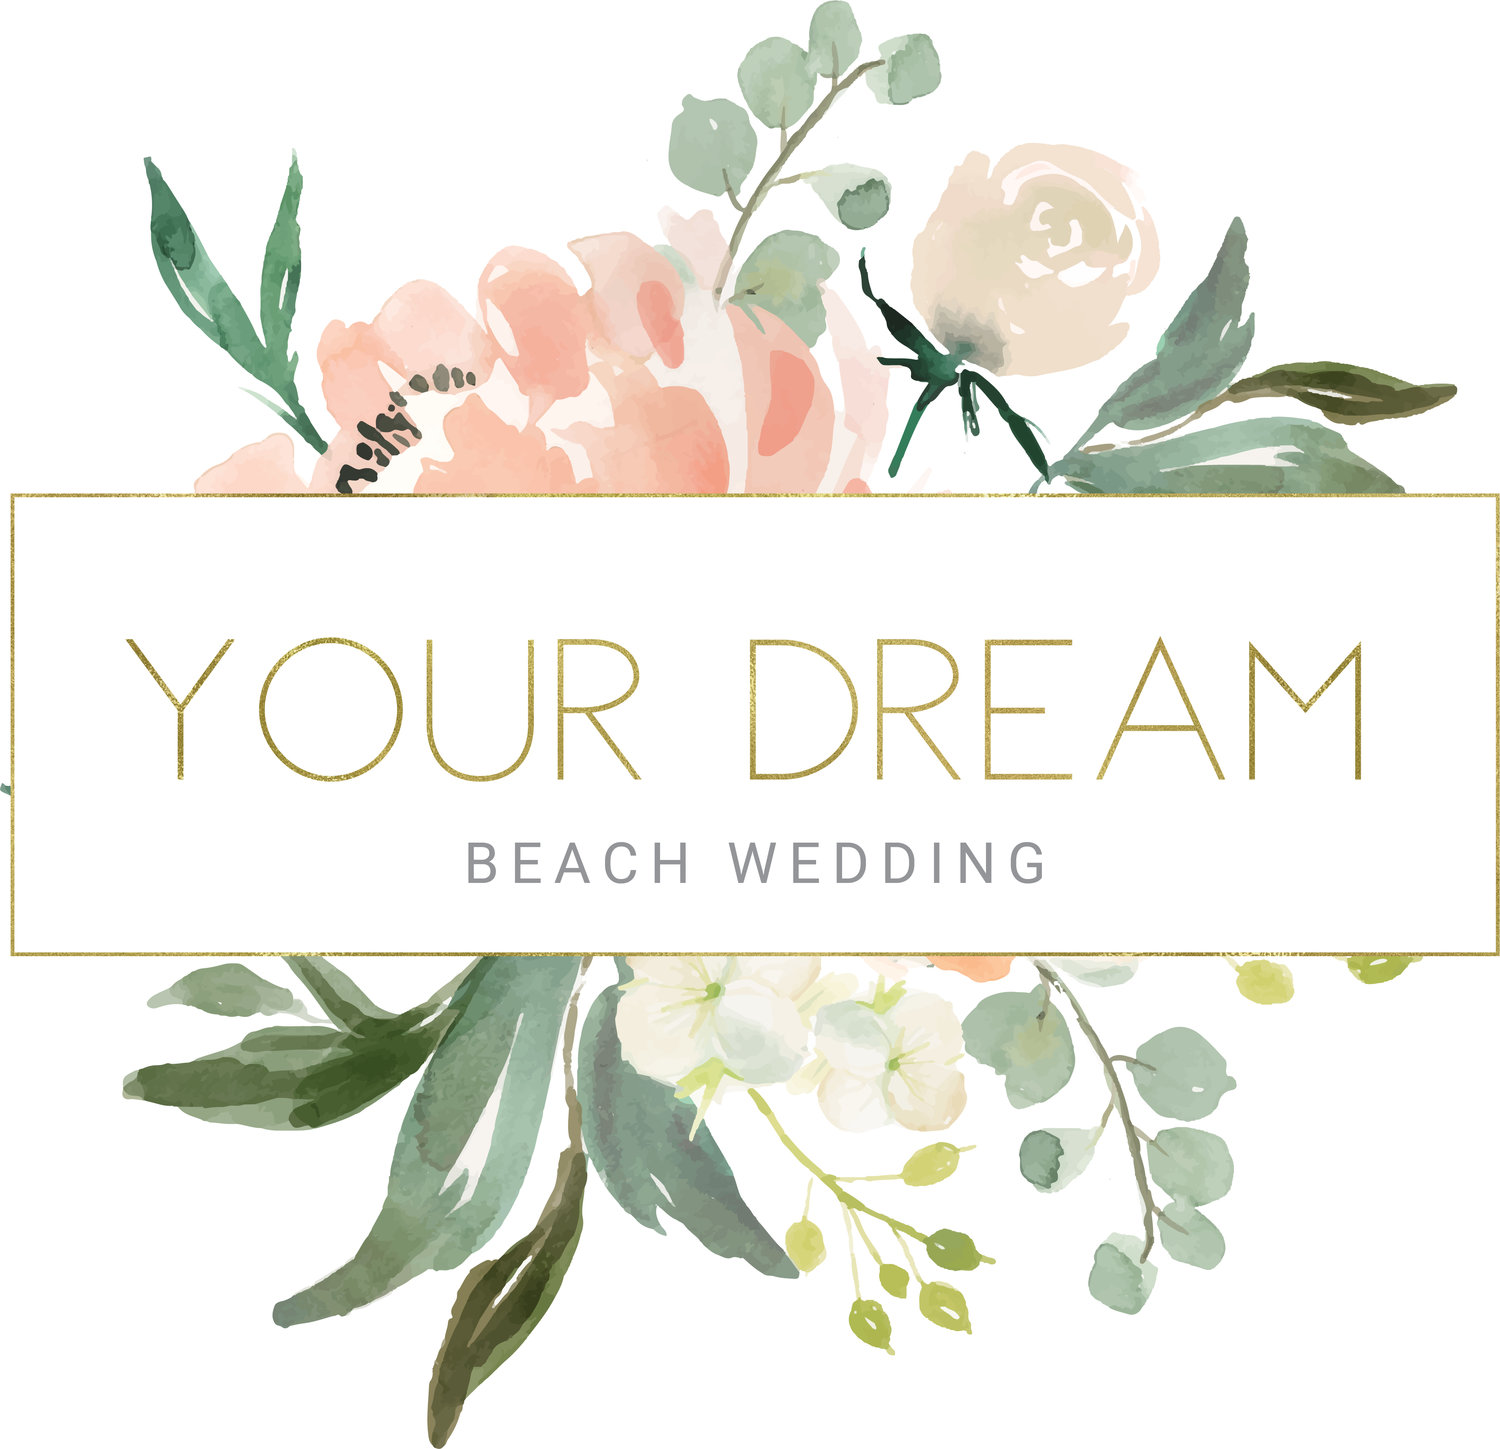 Gulf Shores, Orange Beach, Pensacola Beach Weddings